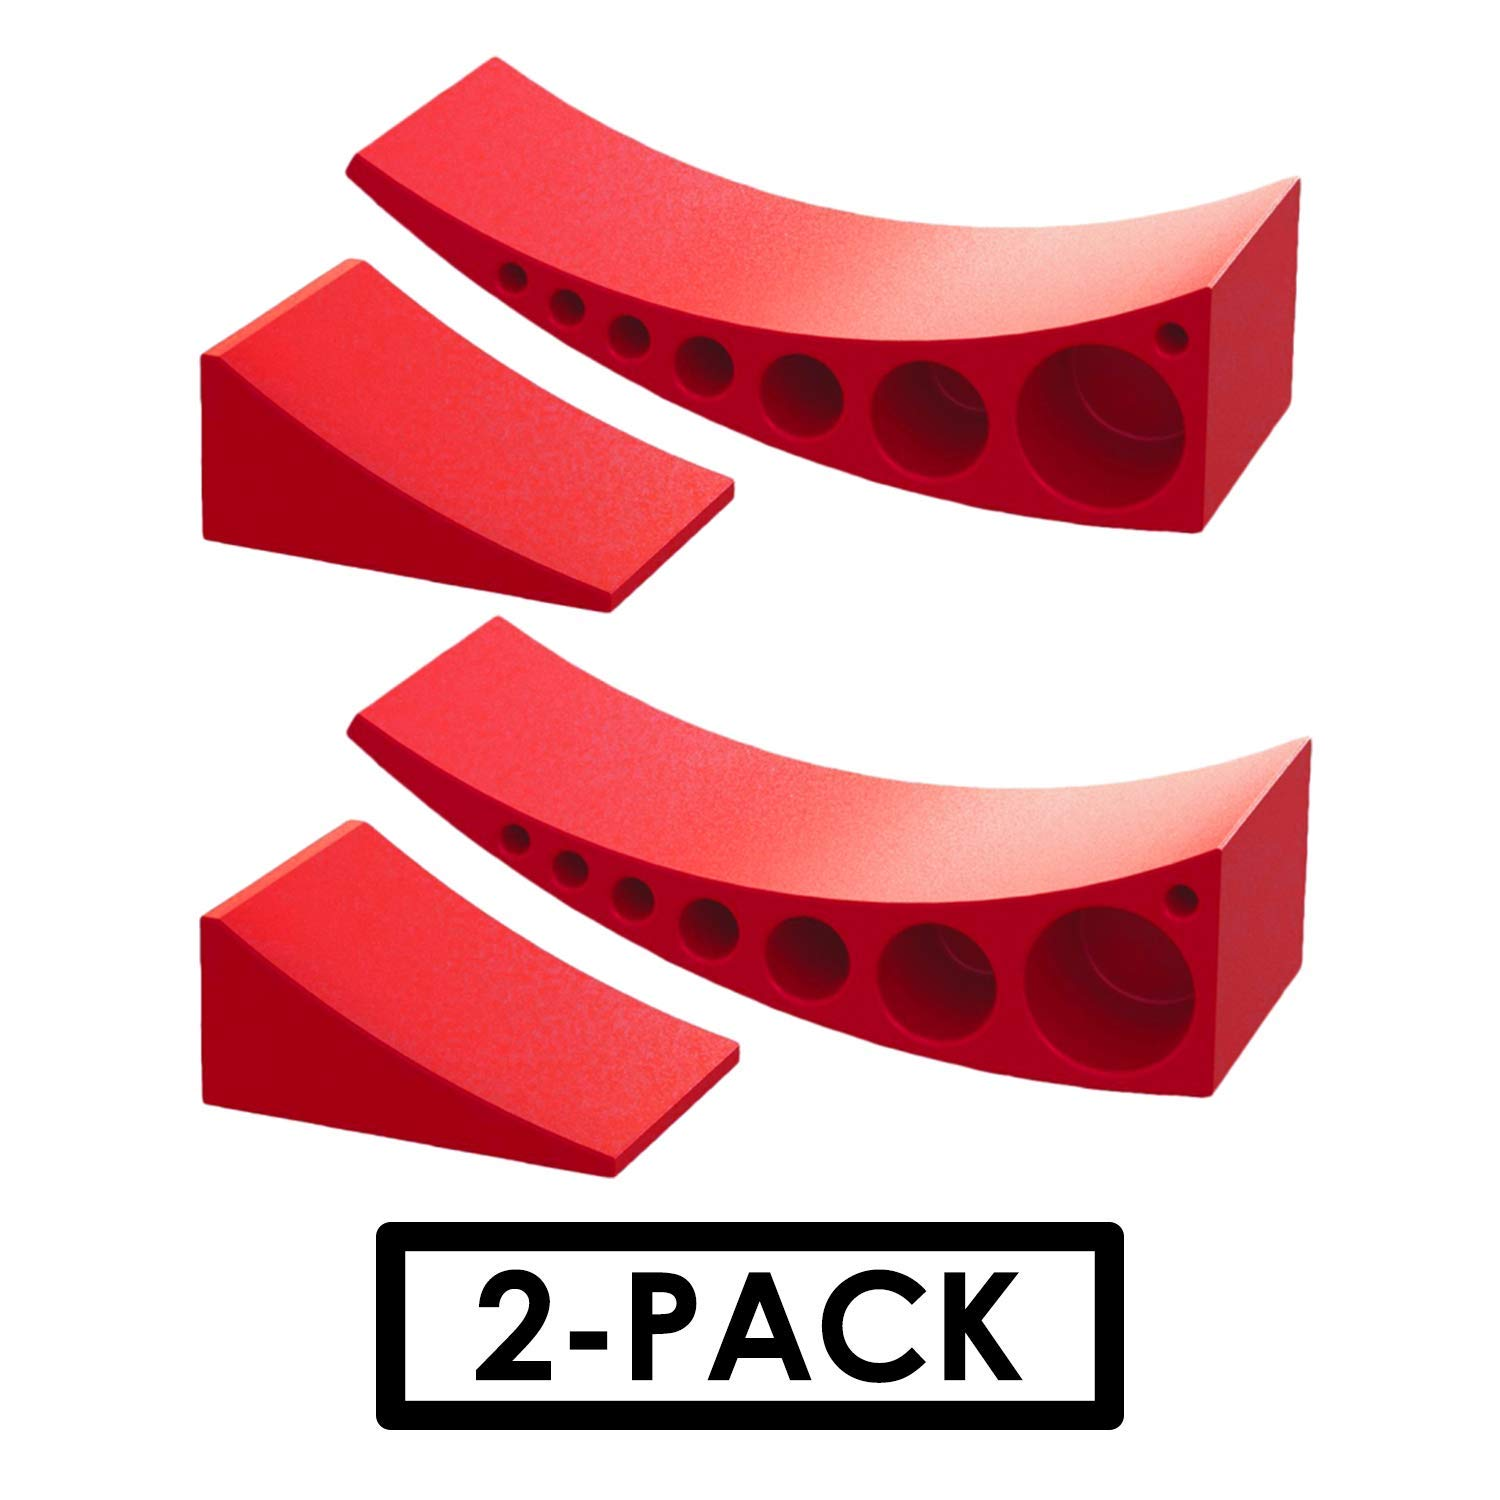 2-Pack Camper Leveler, Chock Kit | Andersen 3604 x2 | Less Than 5 Minutes to Level Your Camper or Trailer | Levelers for RV | Simply Drive On. Chock. Done. | Faster and Easier Than RV Leveling Blocks! by Andersen Hitches